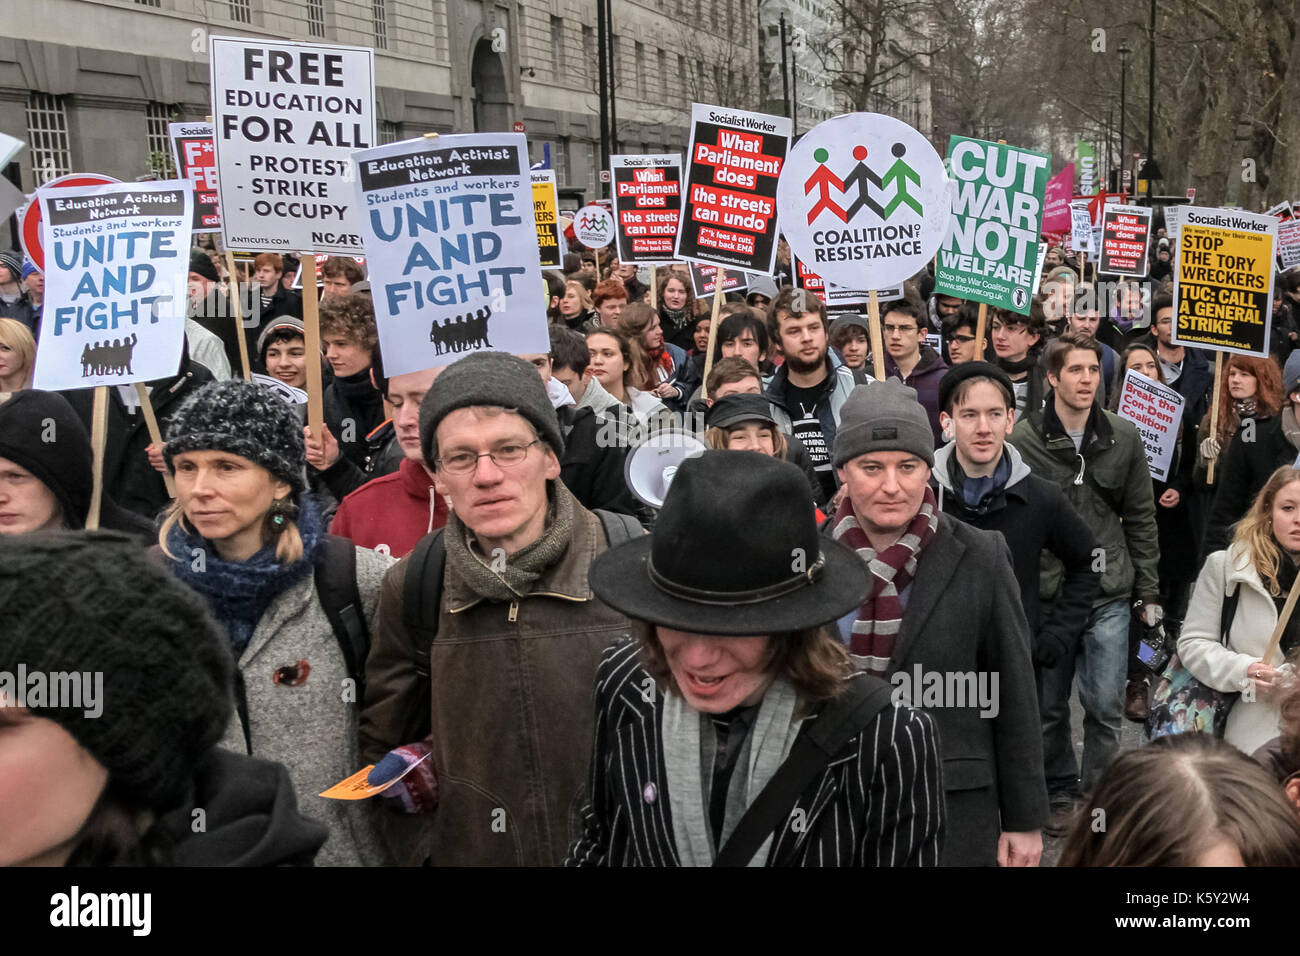 Students protest in central London against public spending cuts and the rise in tuition fees. - Stock Image